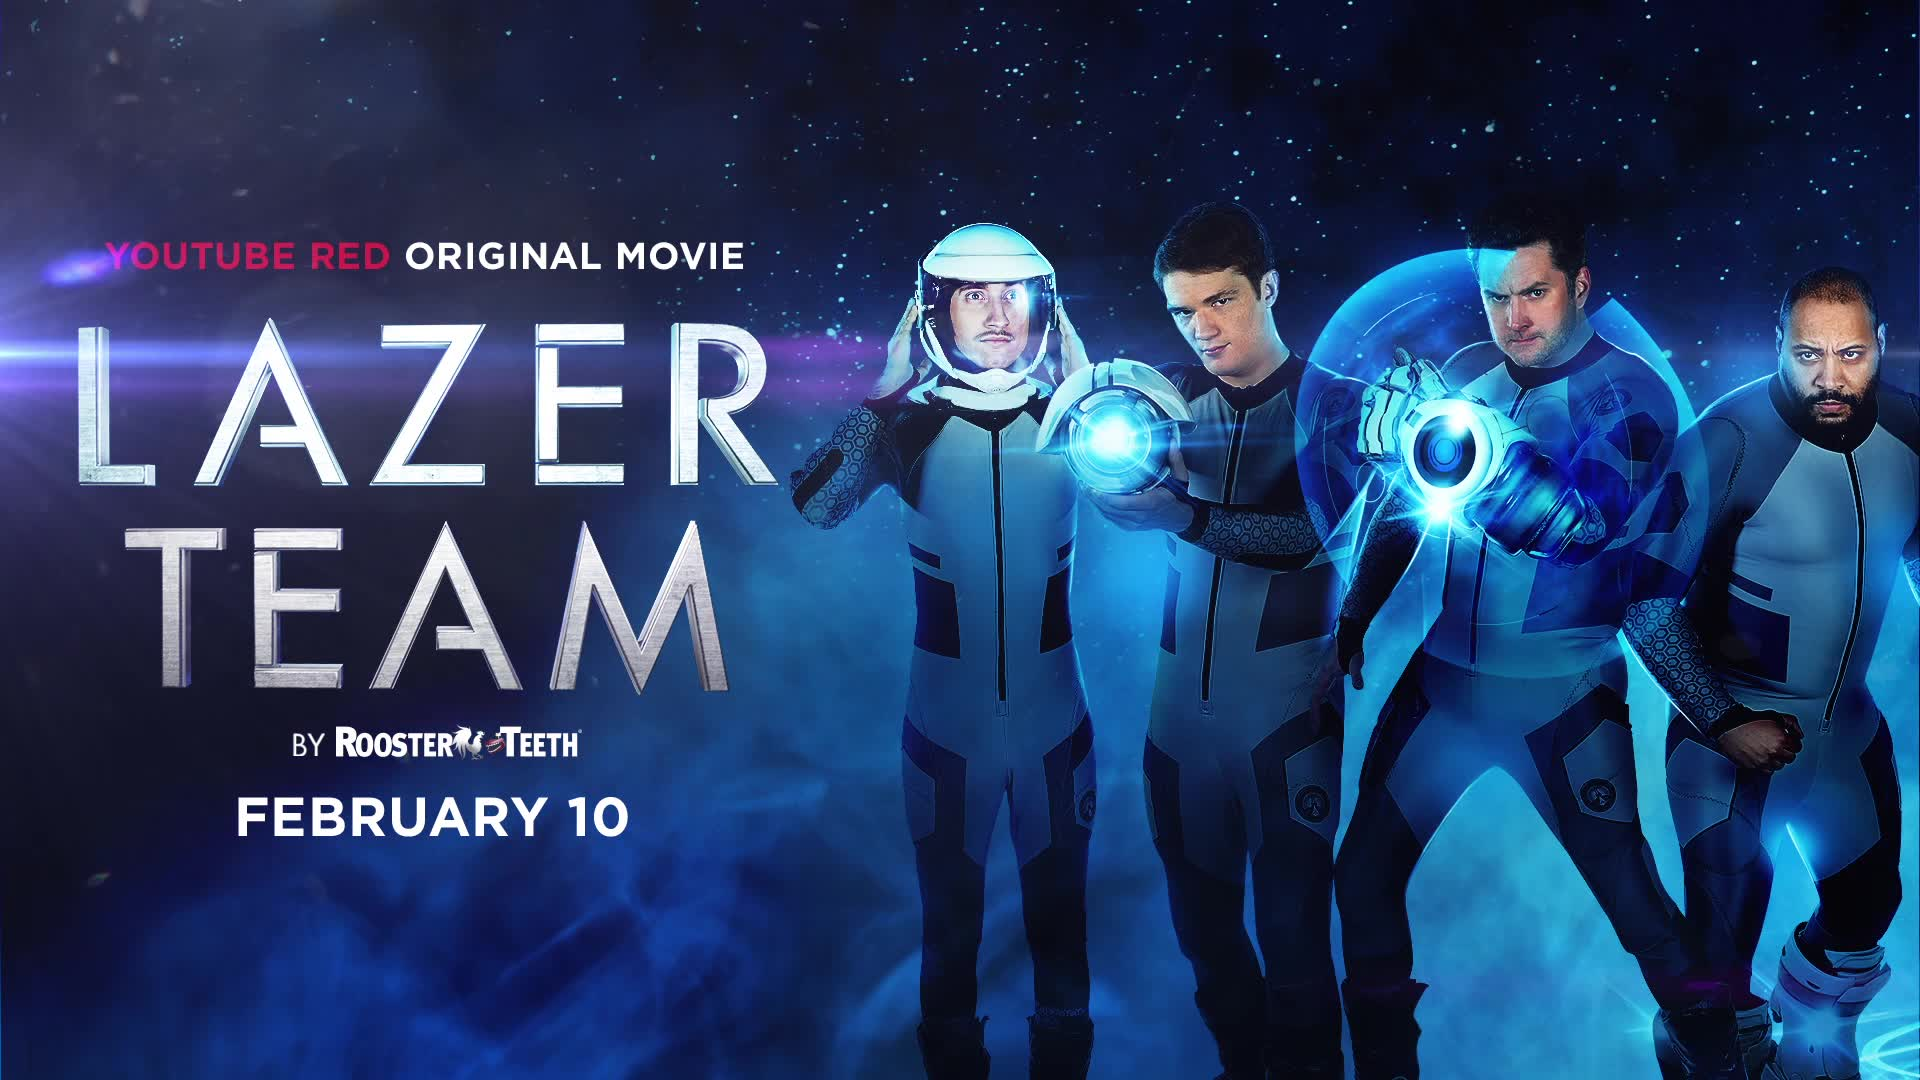 download full movie Lazer Team in italian